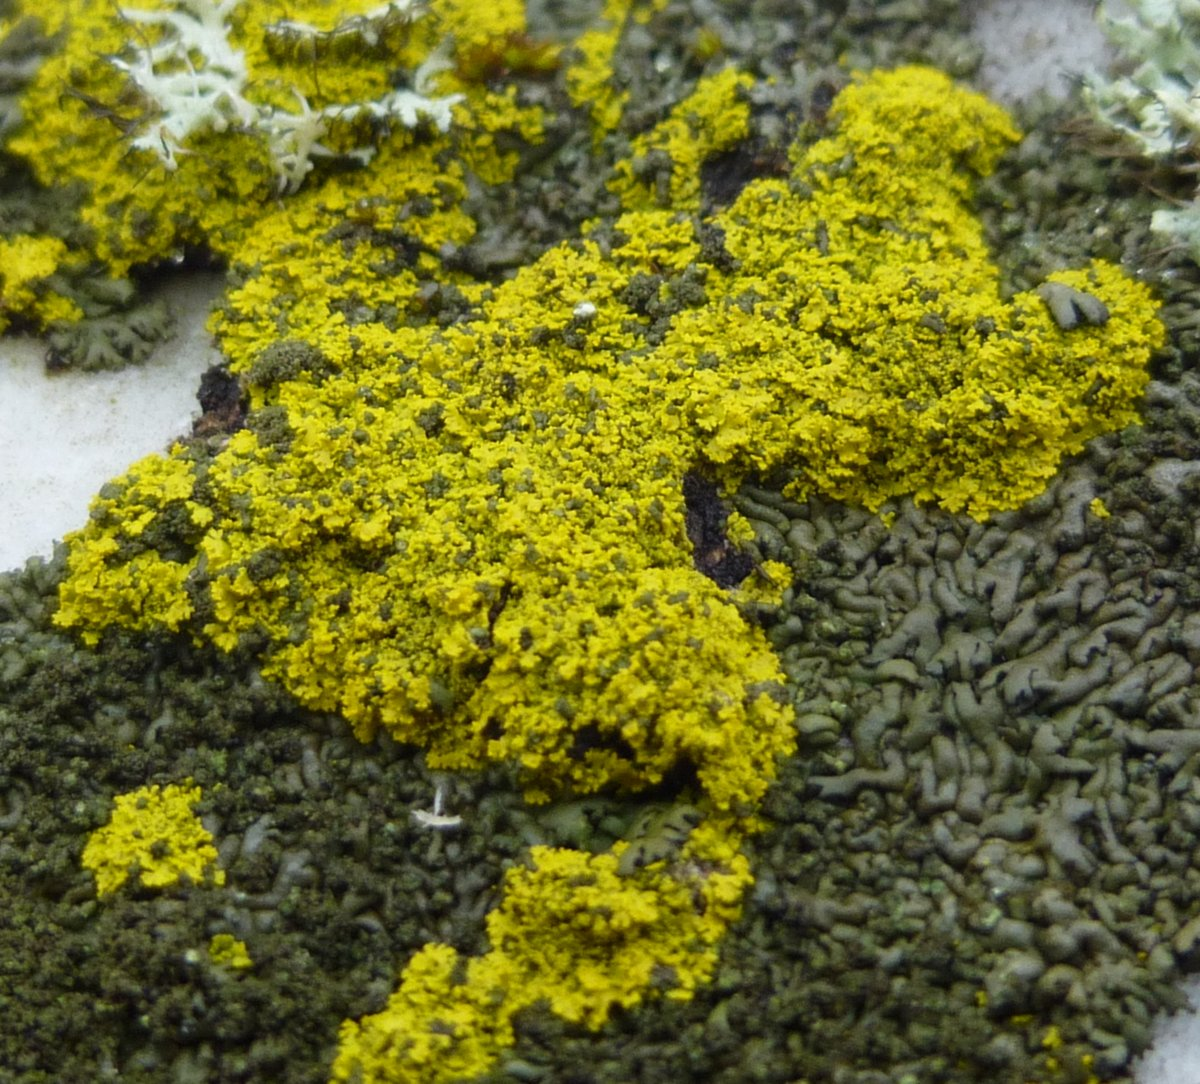 6. Green and Yellow Lichens